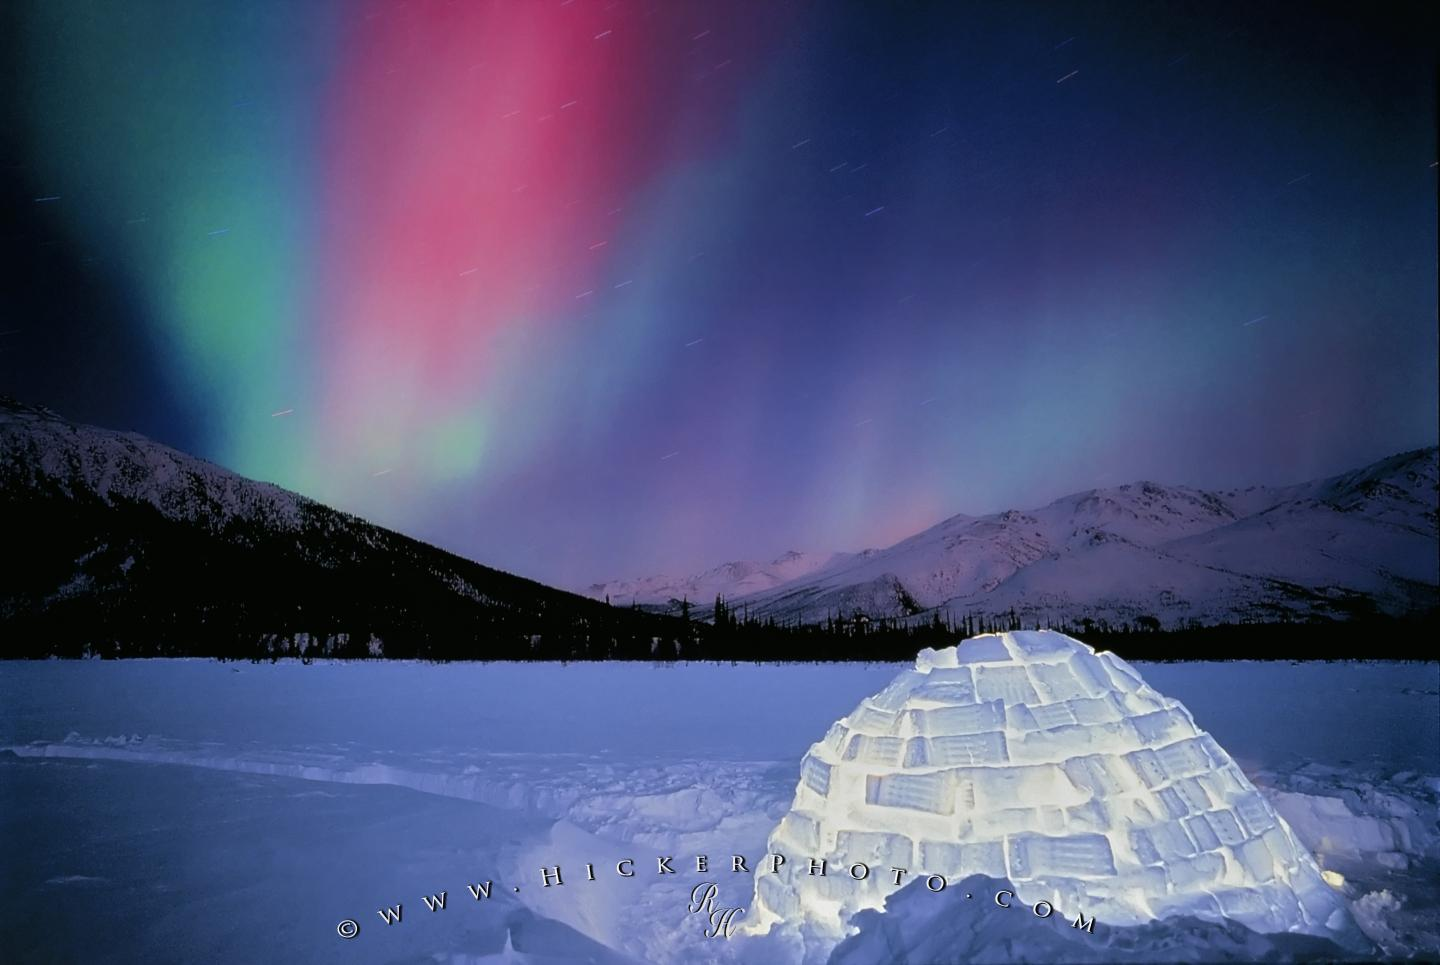 Northern Lights Wallpapers - Wallpaper Cave   Alaska Northern Lights Wallpaper